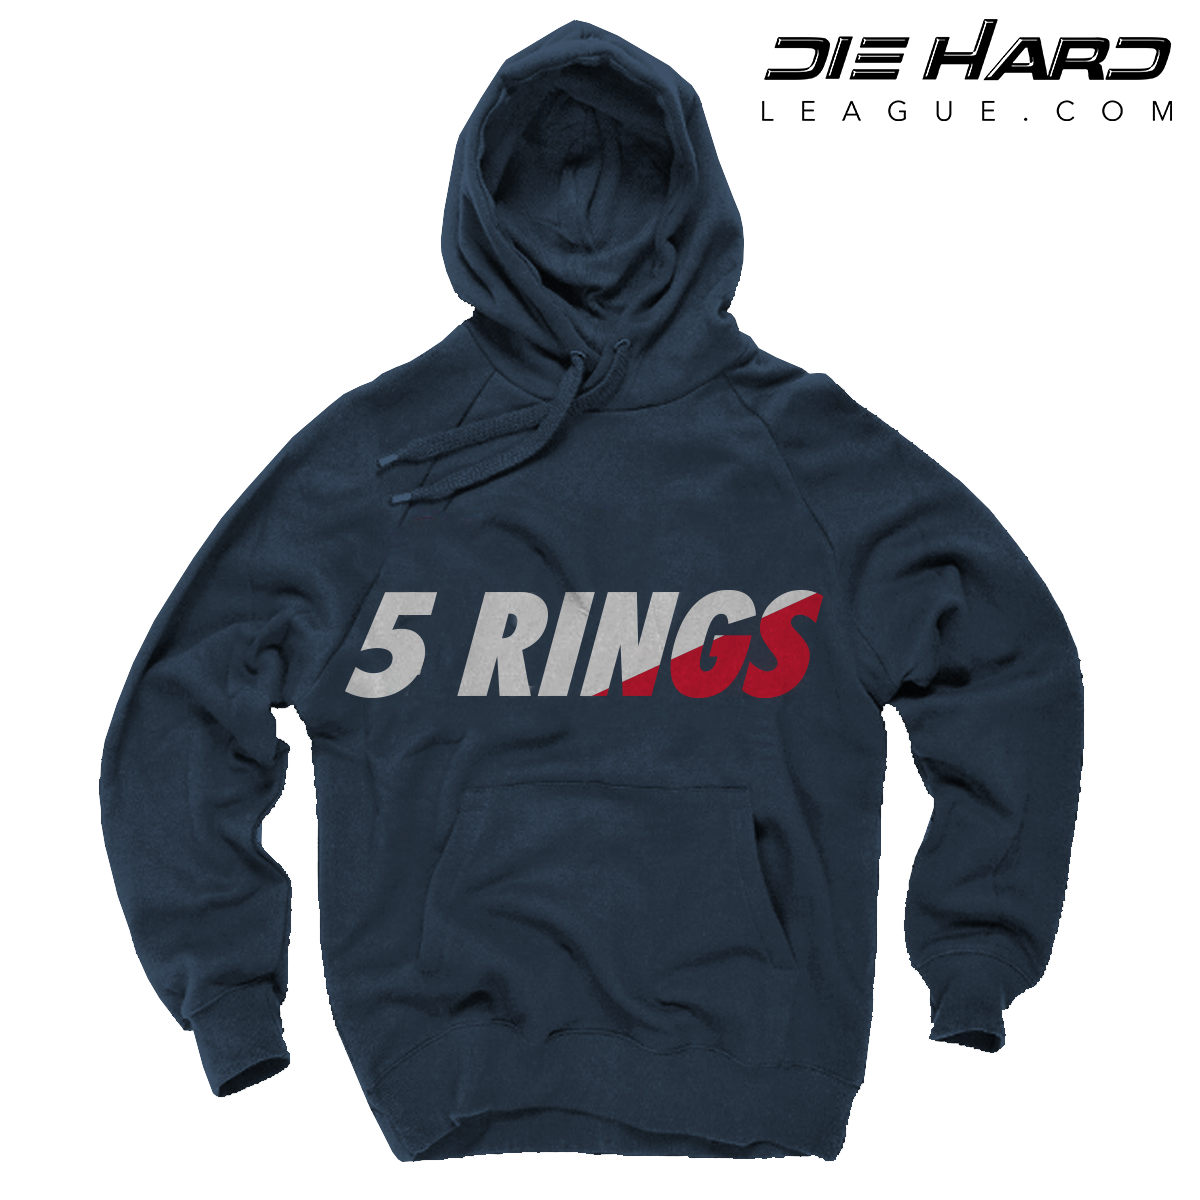 New England Patriots Hoodie - 5 Rings Navy Sweater 0017215b4